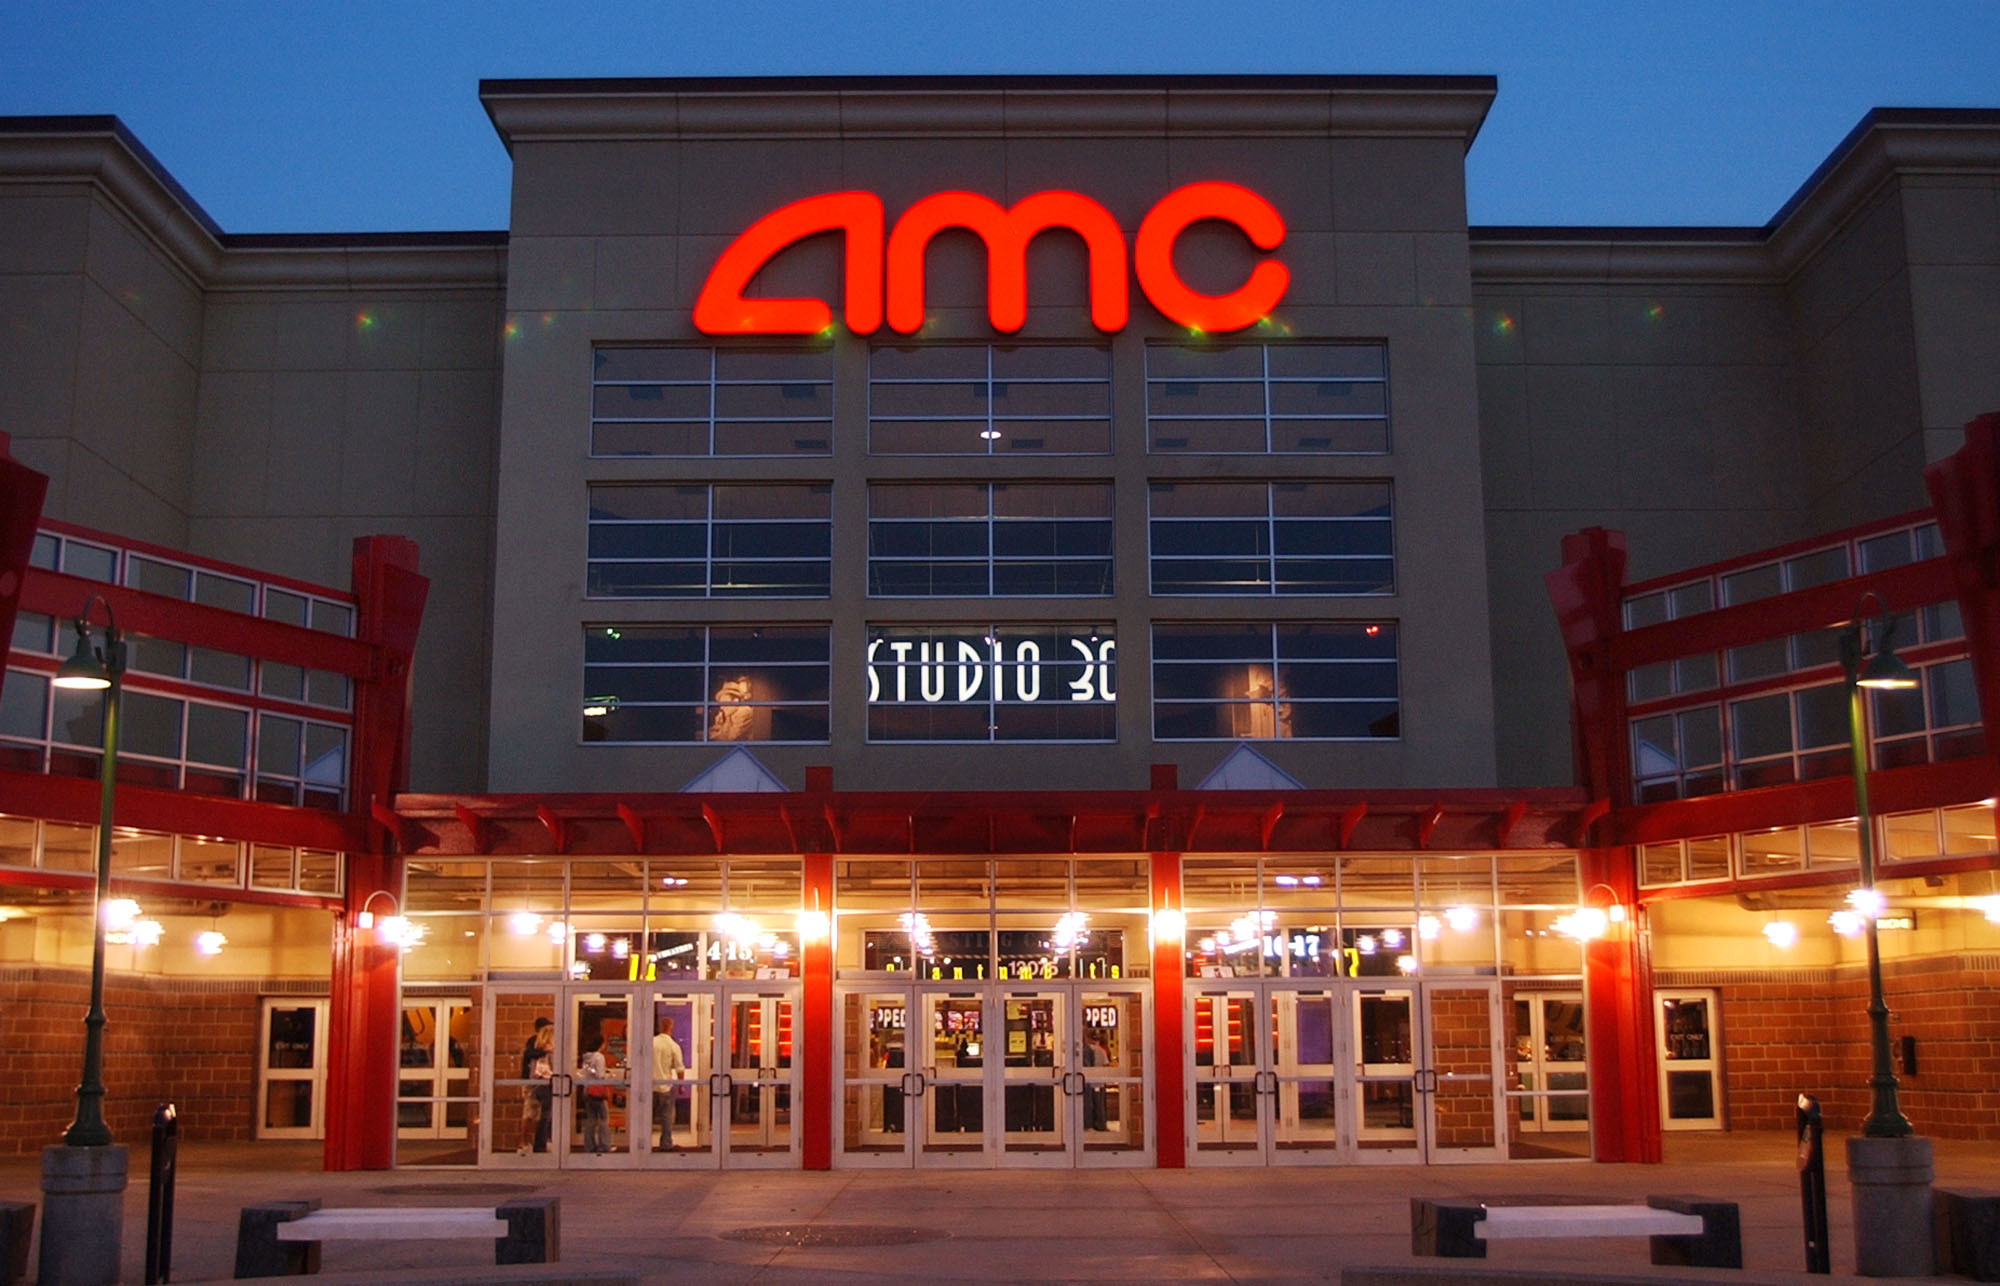 Amc Bans Universal Movies From Its Theaters Indiewire Learn more about our health and safety protocols for our reopening here: https www indiewire com 2020 04 amc universal movies ban 1202228026